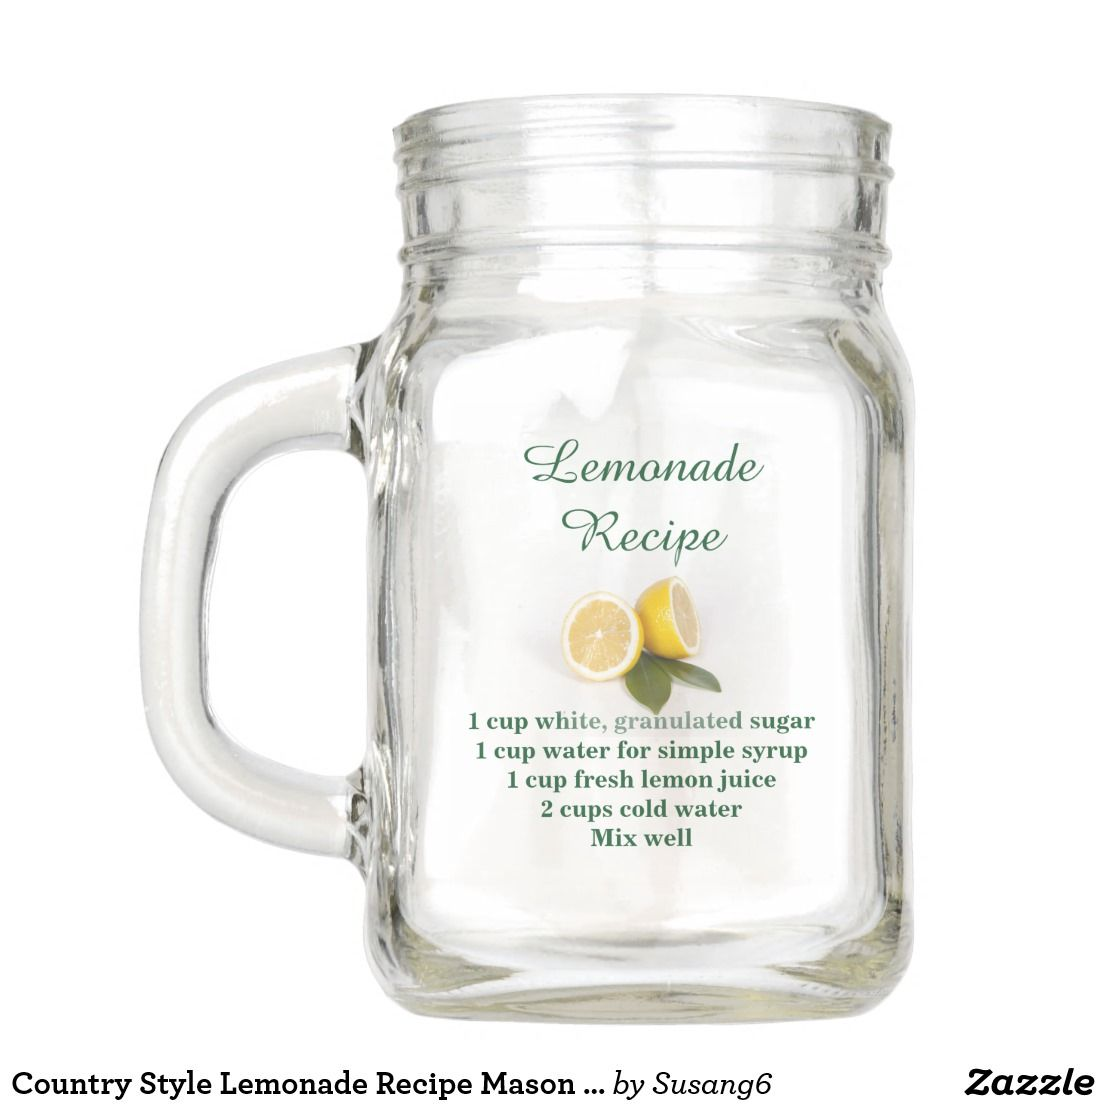 Country Style Lemonade Recipe Mason Jar Zazzle Com Lemonade Recipes Mason Jars Lemonade